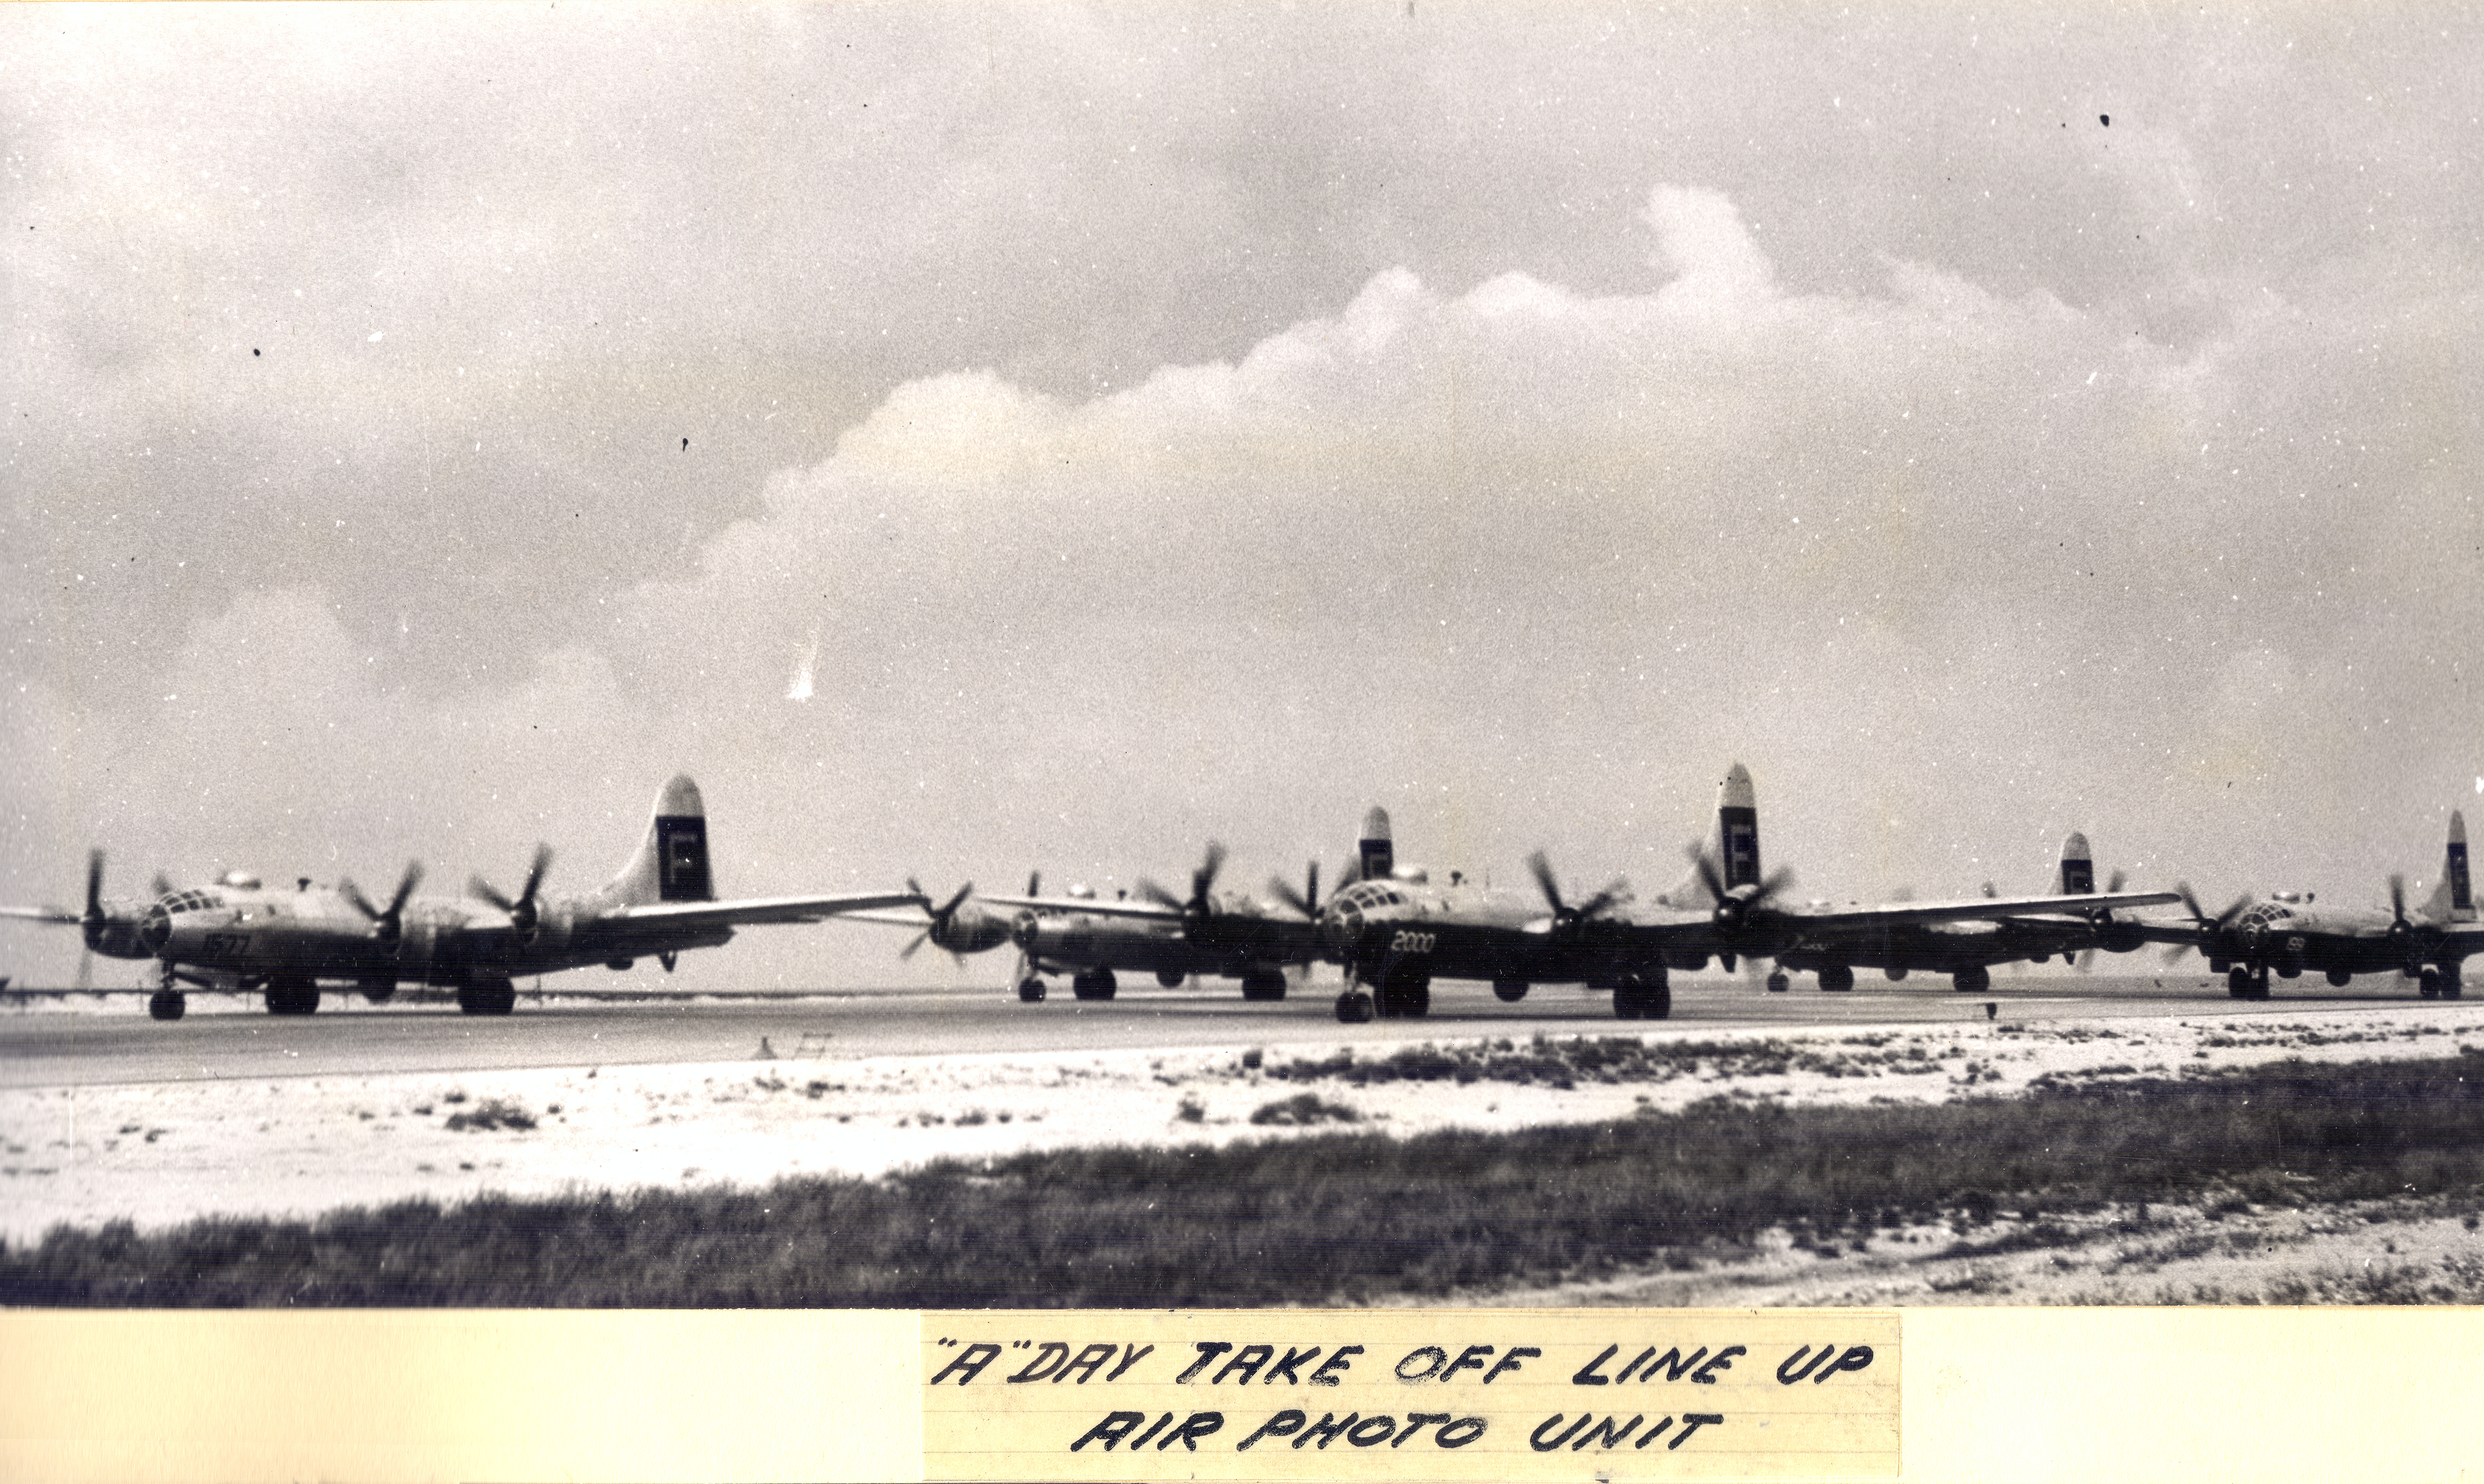 Planes line up to record the first atomic test at Bikini Atoll, 1945-1946